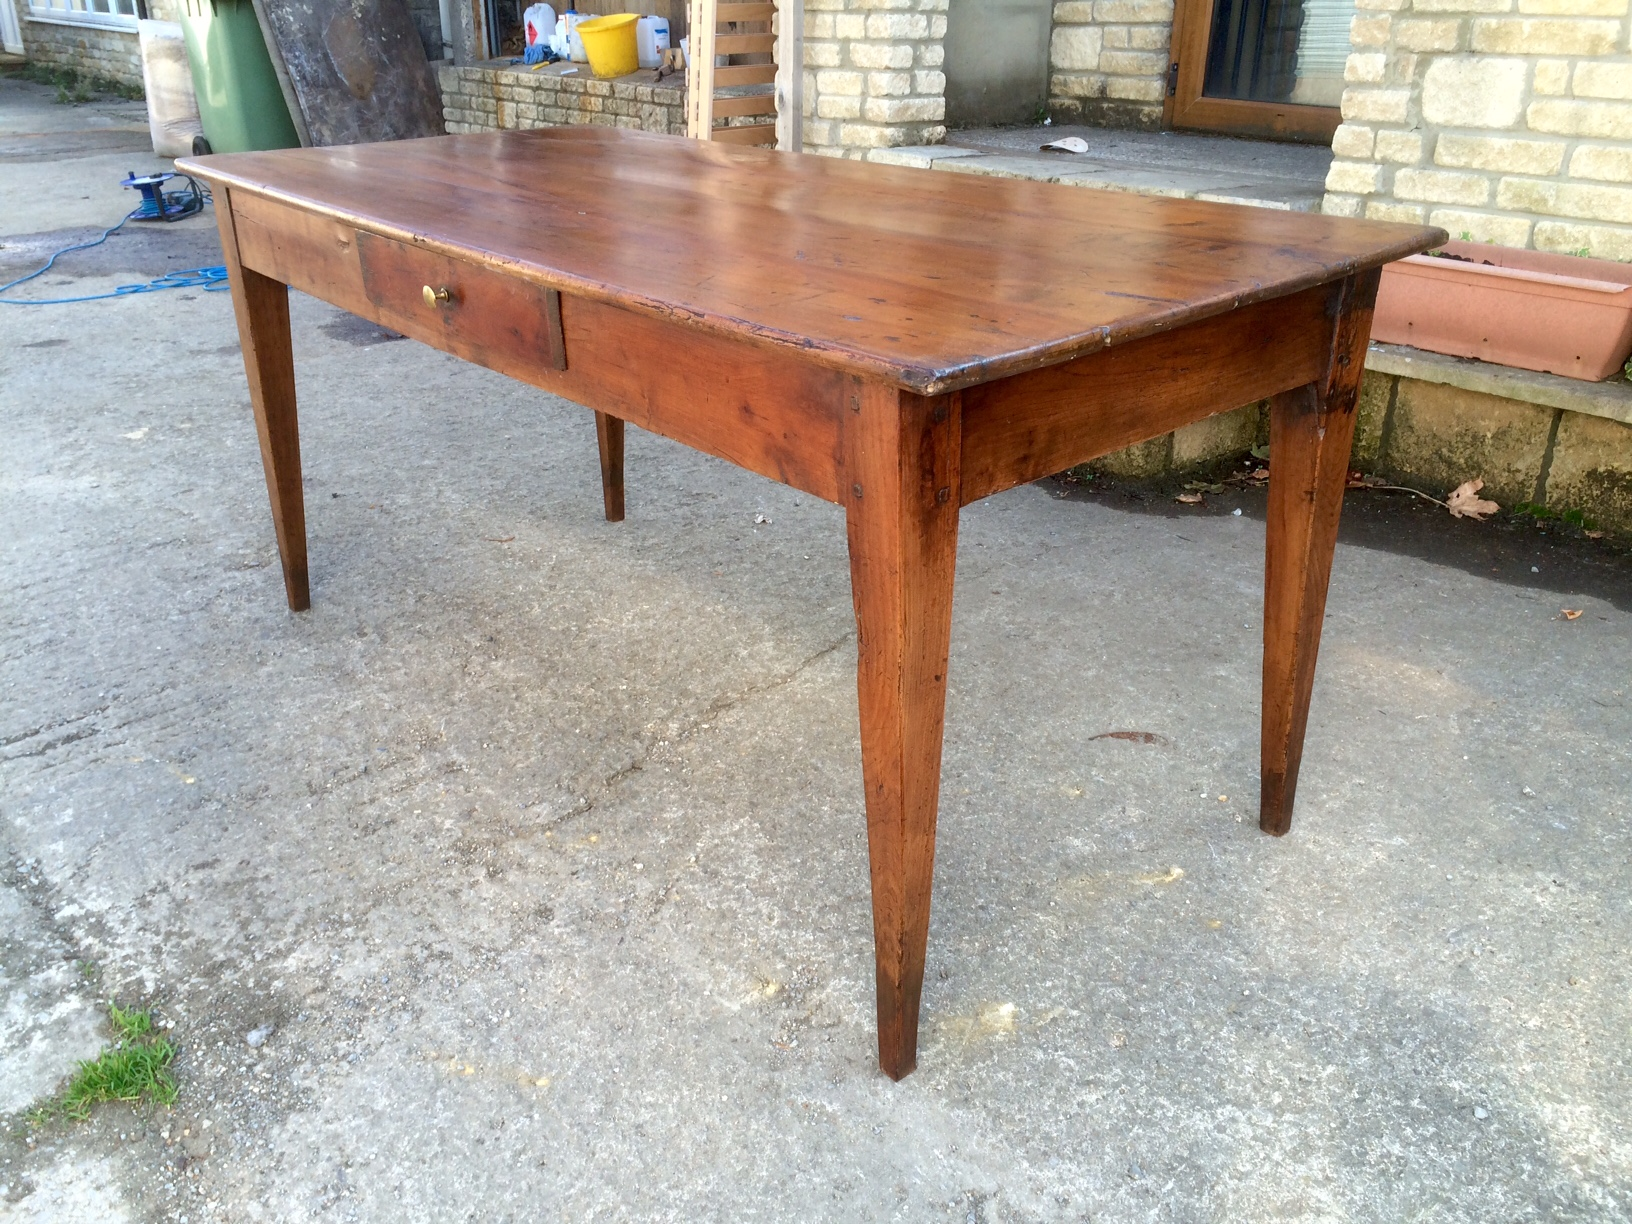 Antique Kitchen Tables – Dedicated to sourcing genuine antique and